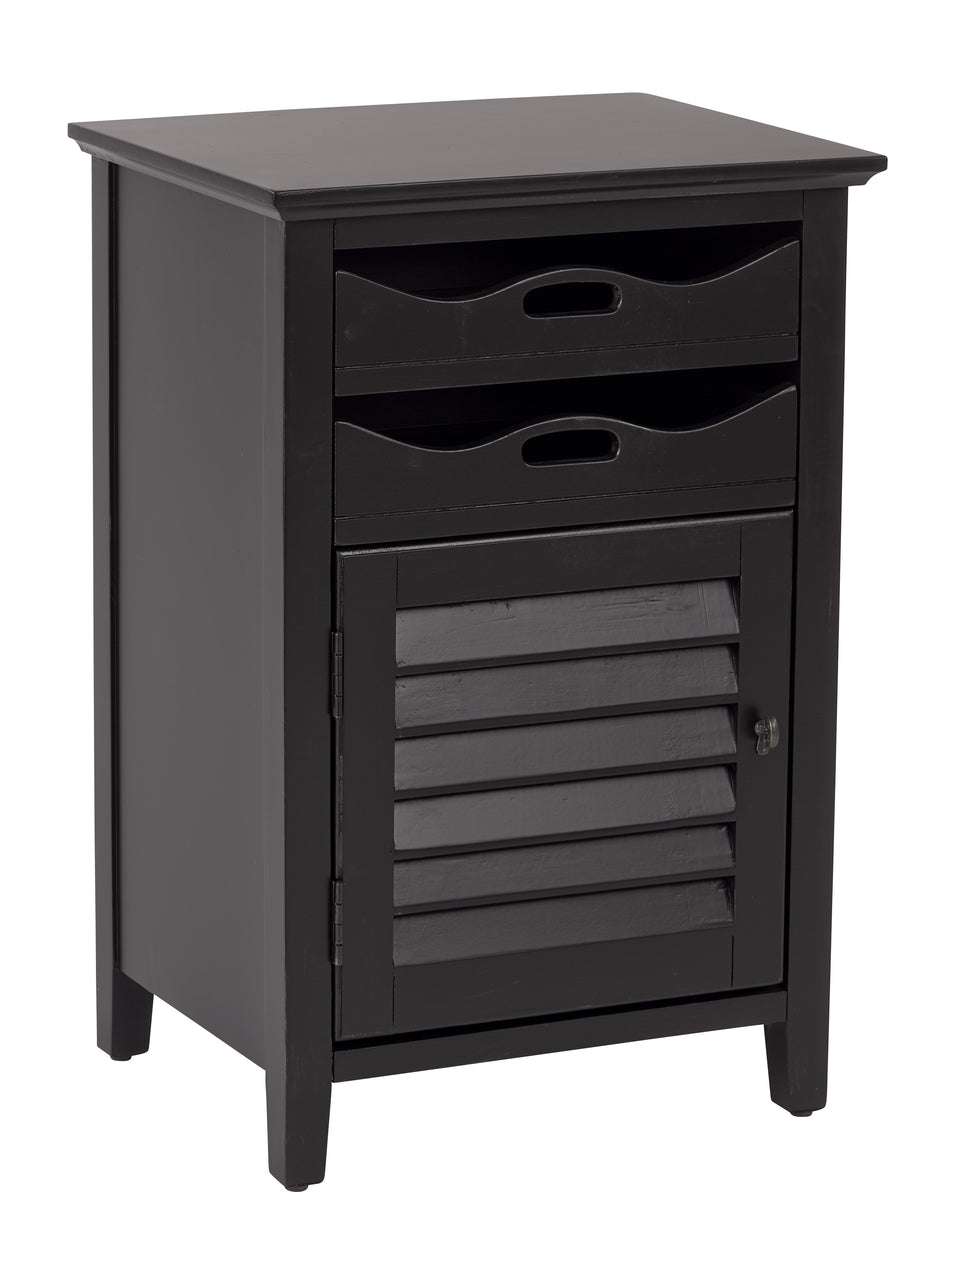 charlotte side table shutter door and two letter tray slide out drawers in black